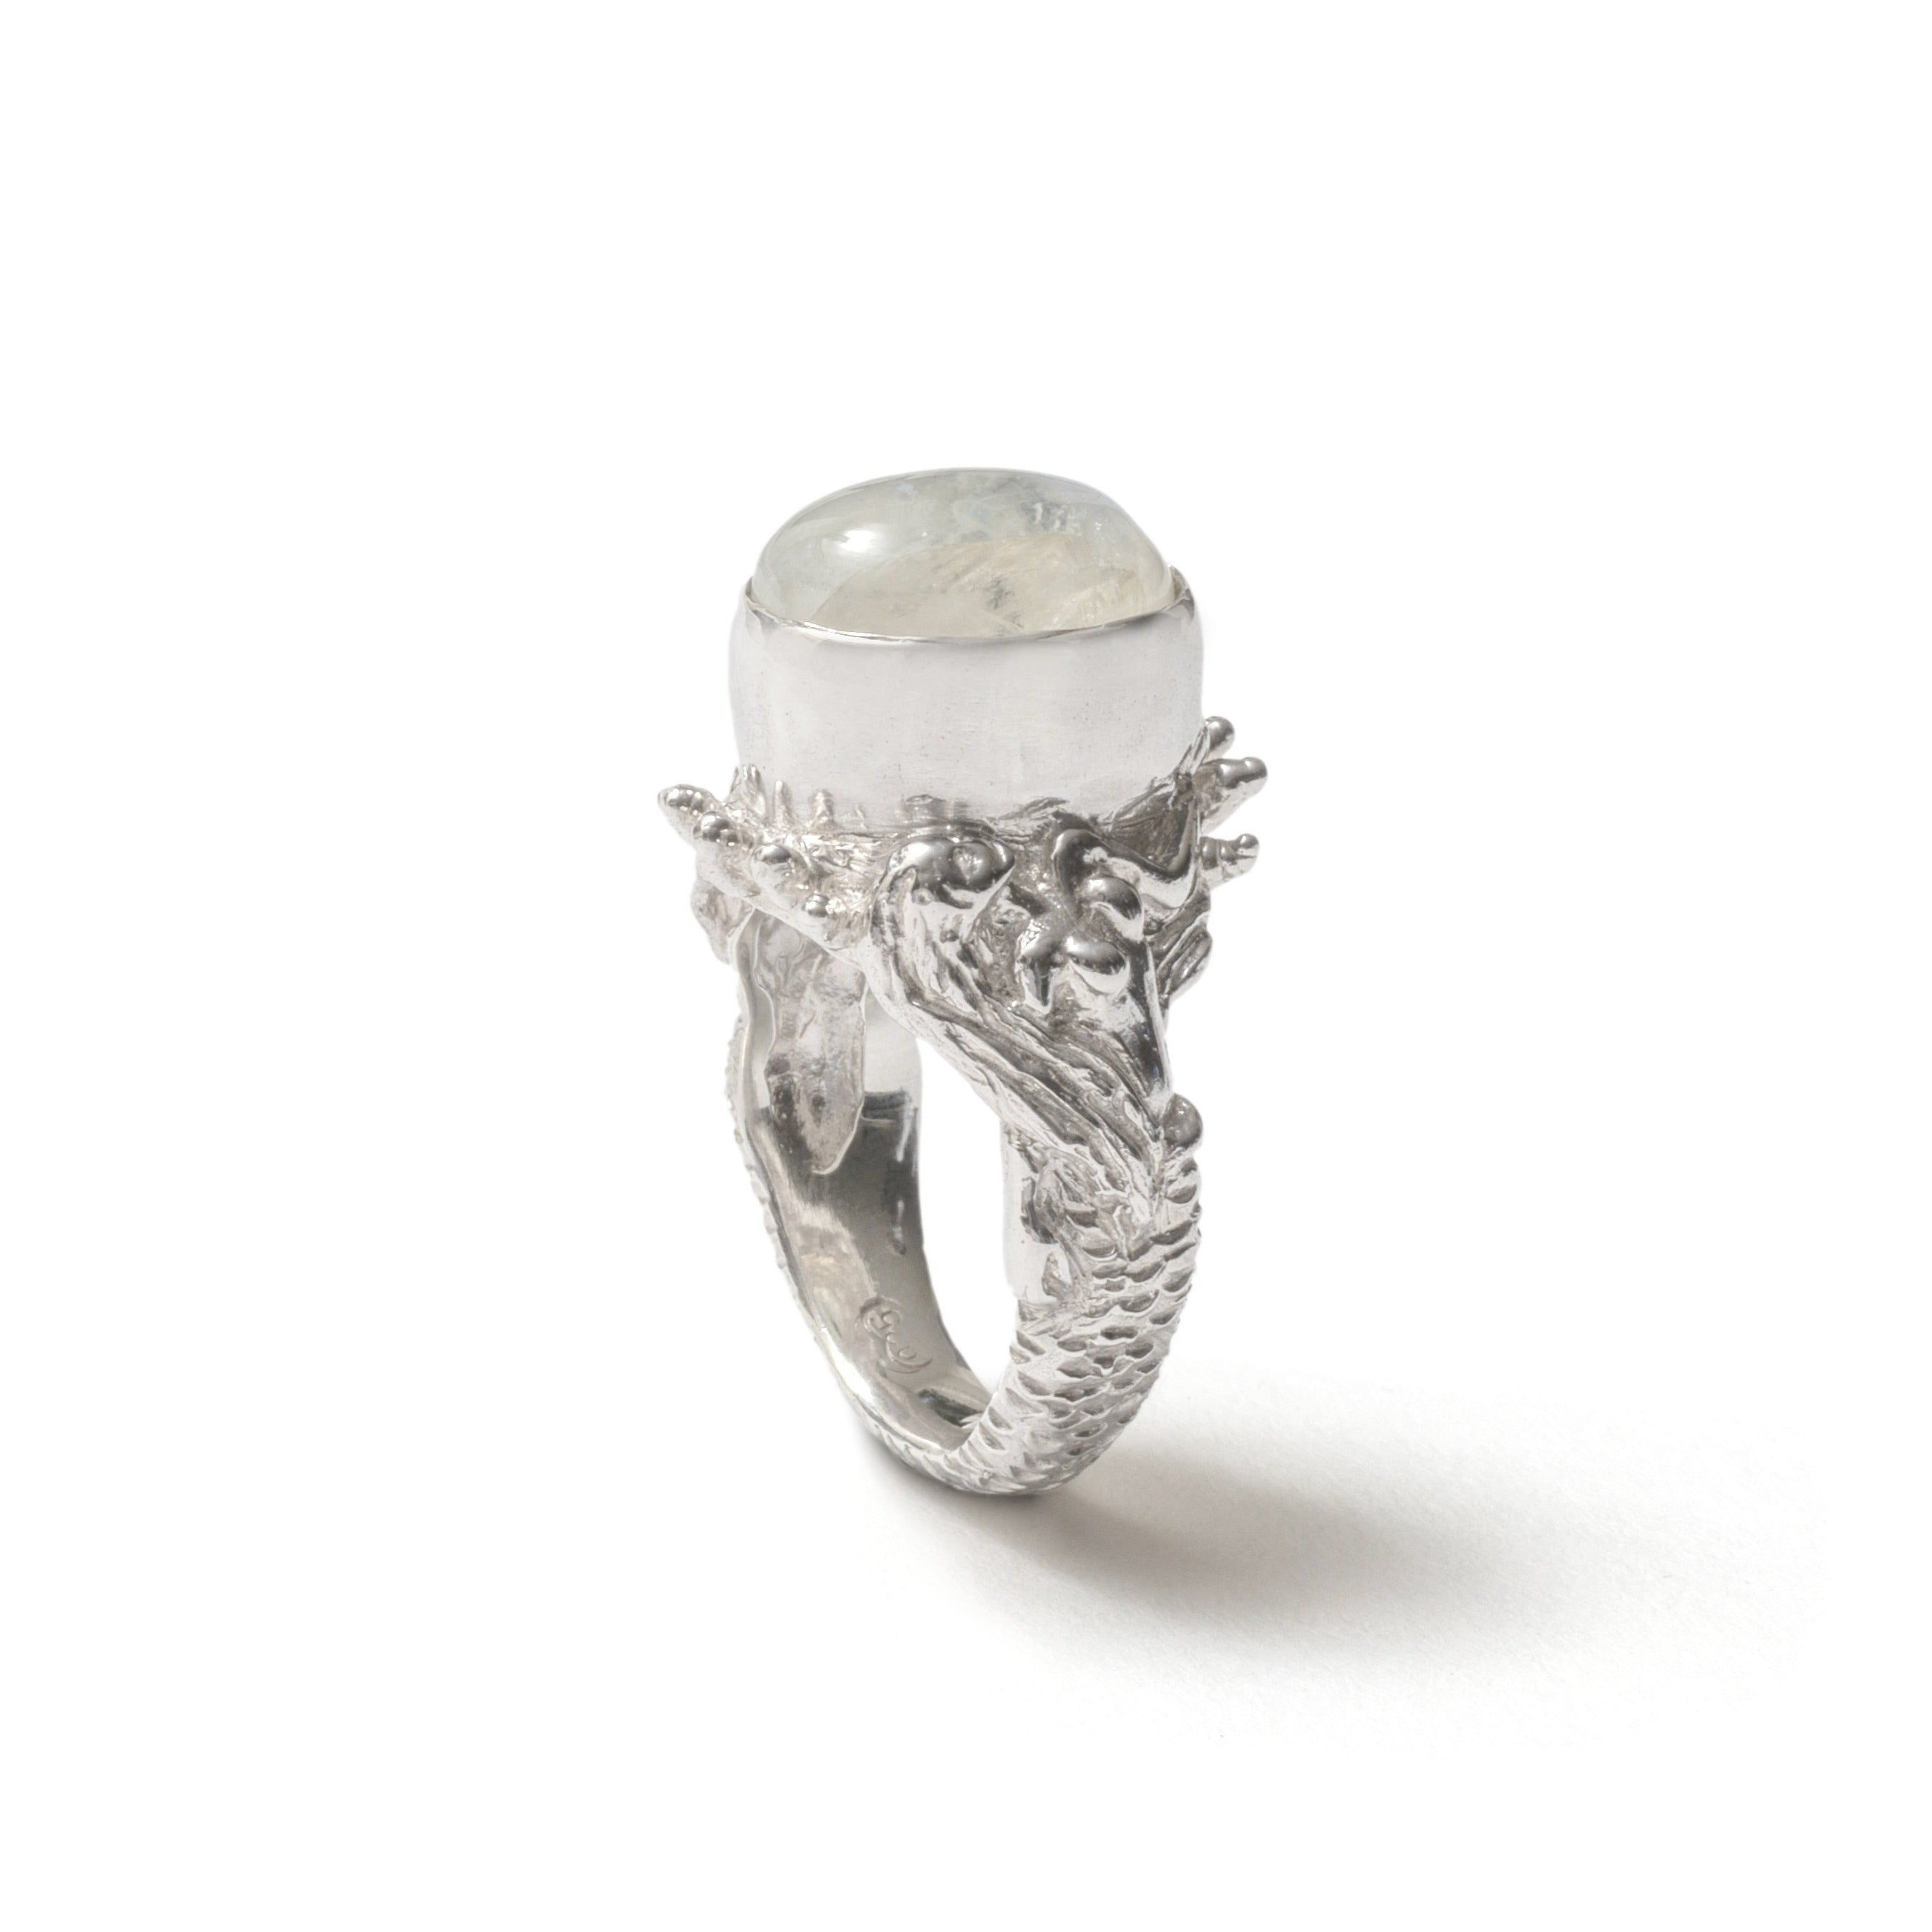 Angitia moonstone sisters ring